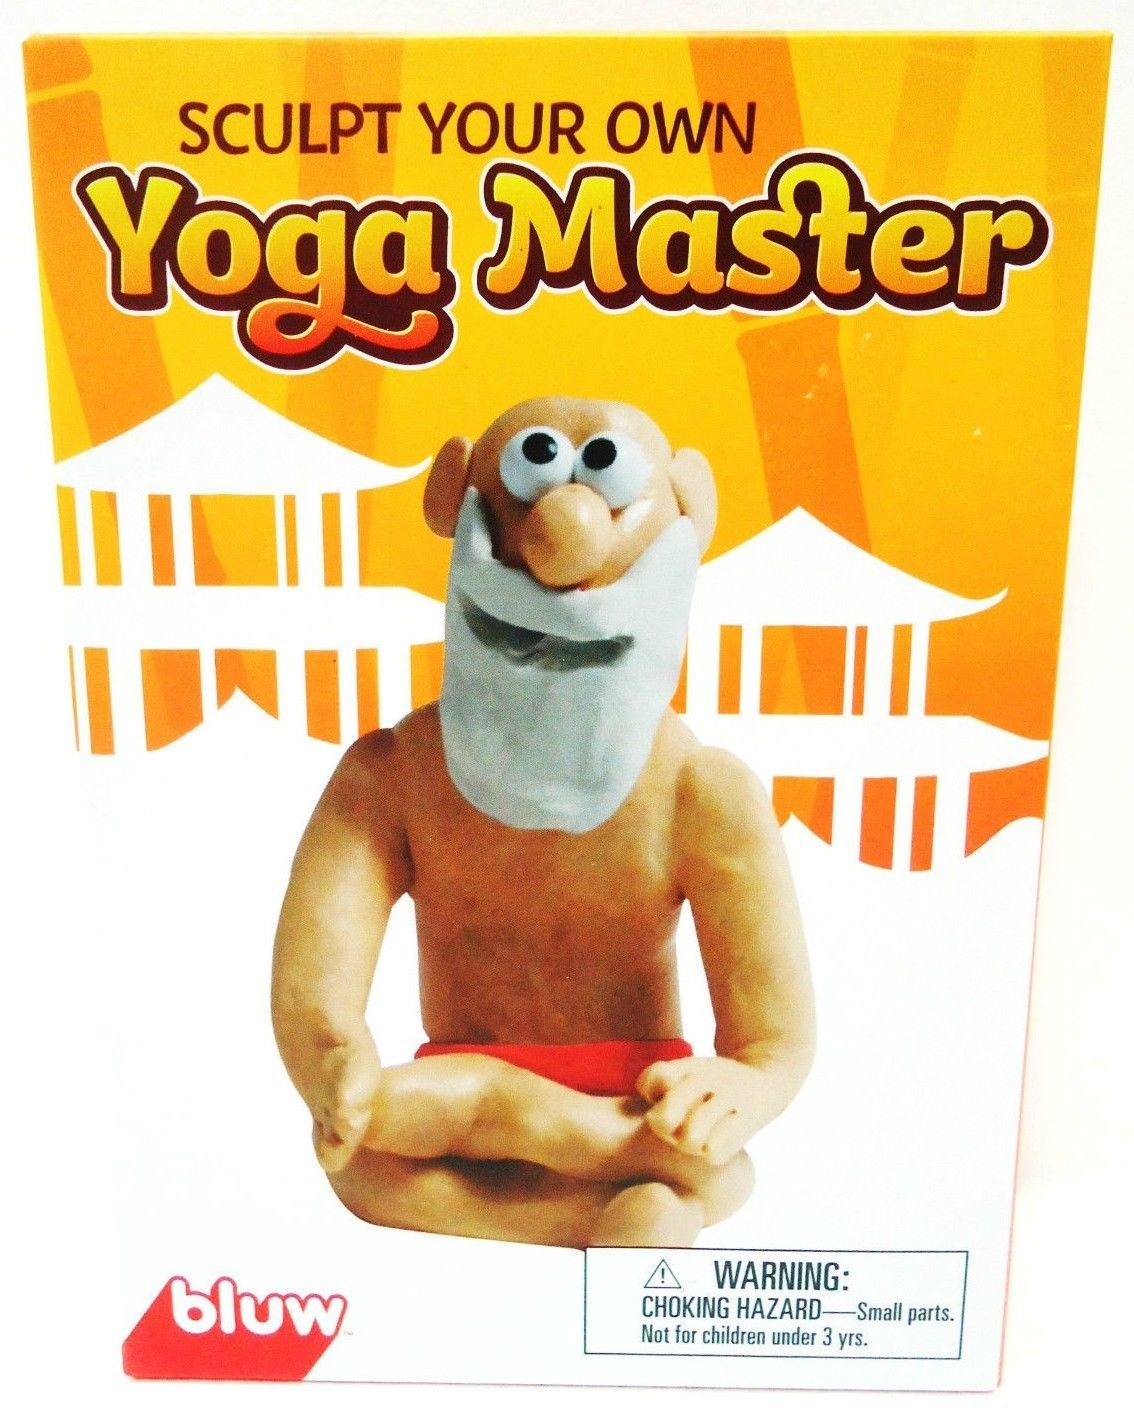 BLUW - SCULPT YOUR OWN YOGA MASTER - CLAY - MODELING - KIT - NEW - CLAYMATION